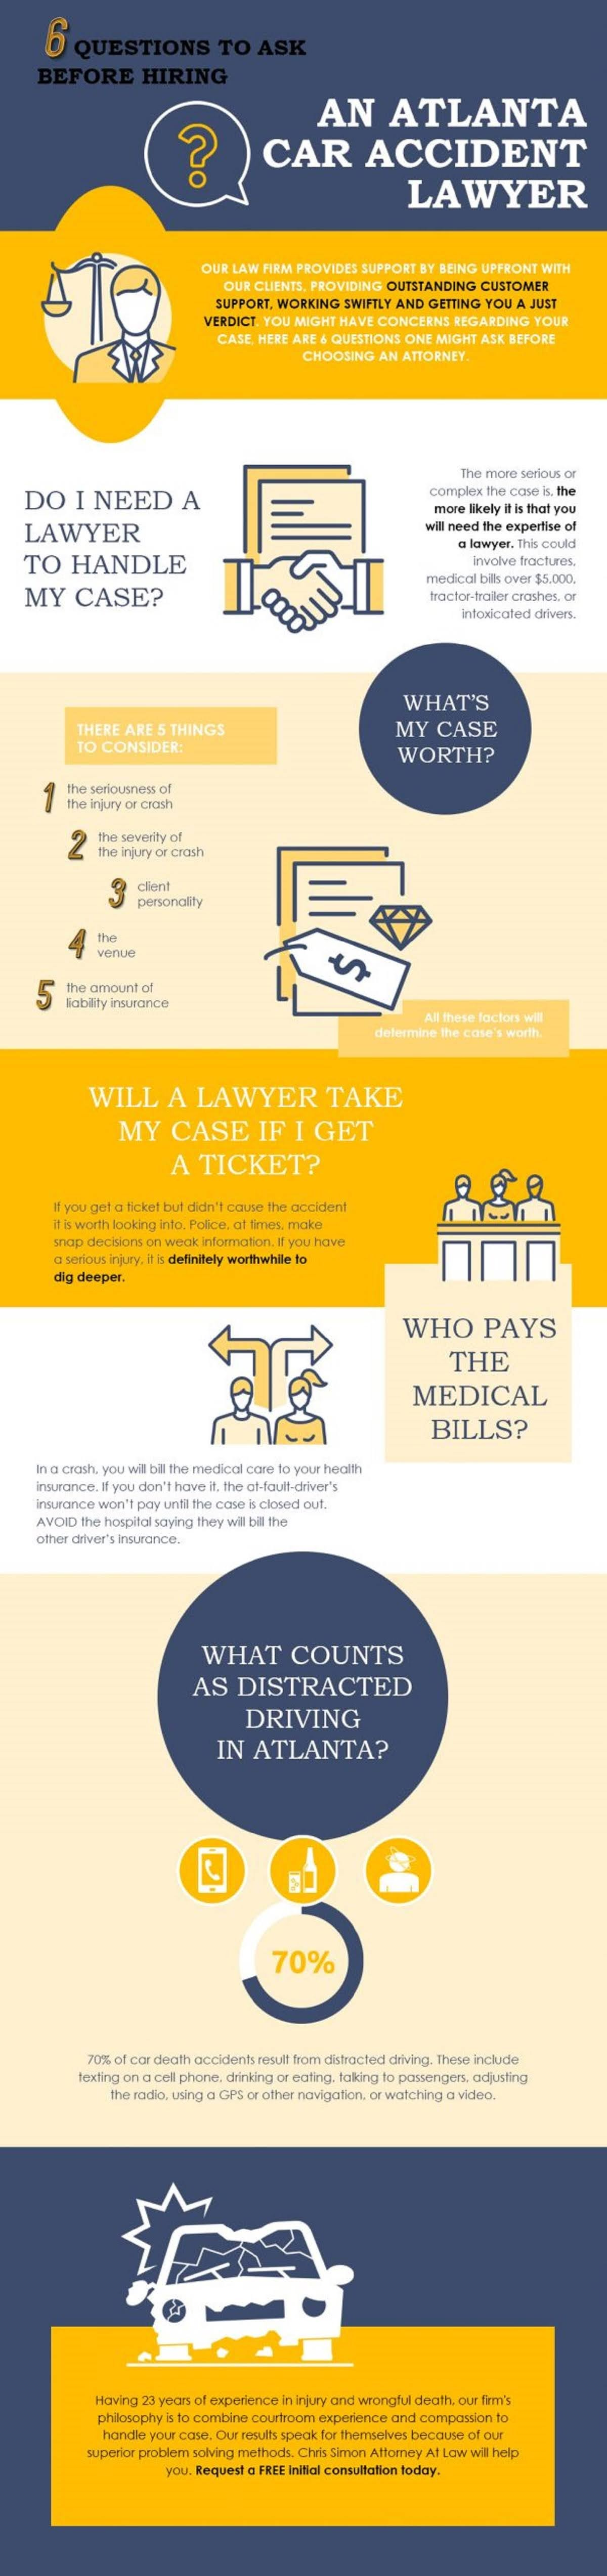 6-questions-to-ask-before-hiring-an-atlanta-car-accident-lawyer-infographic